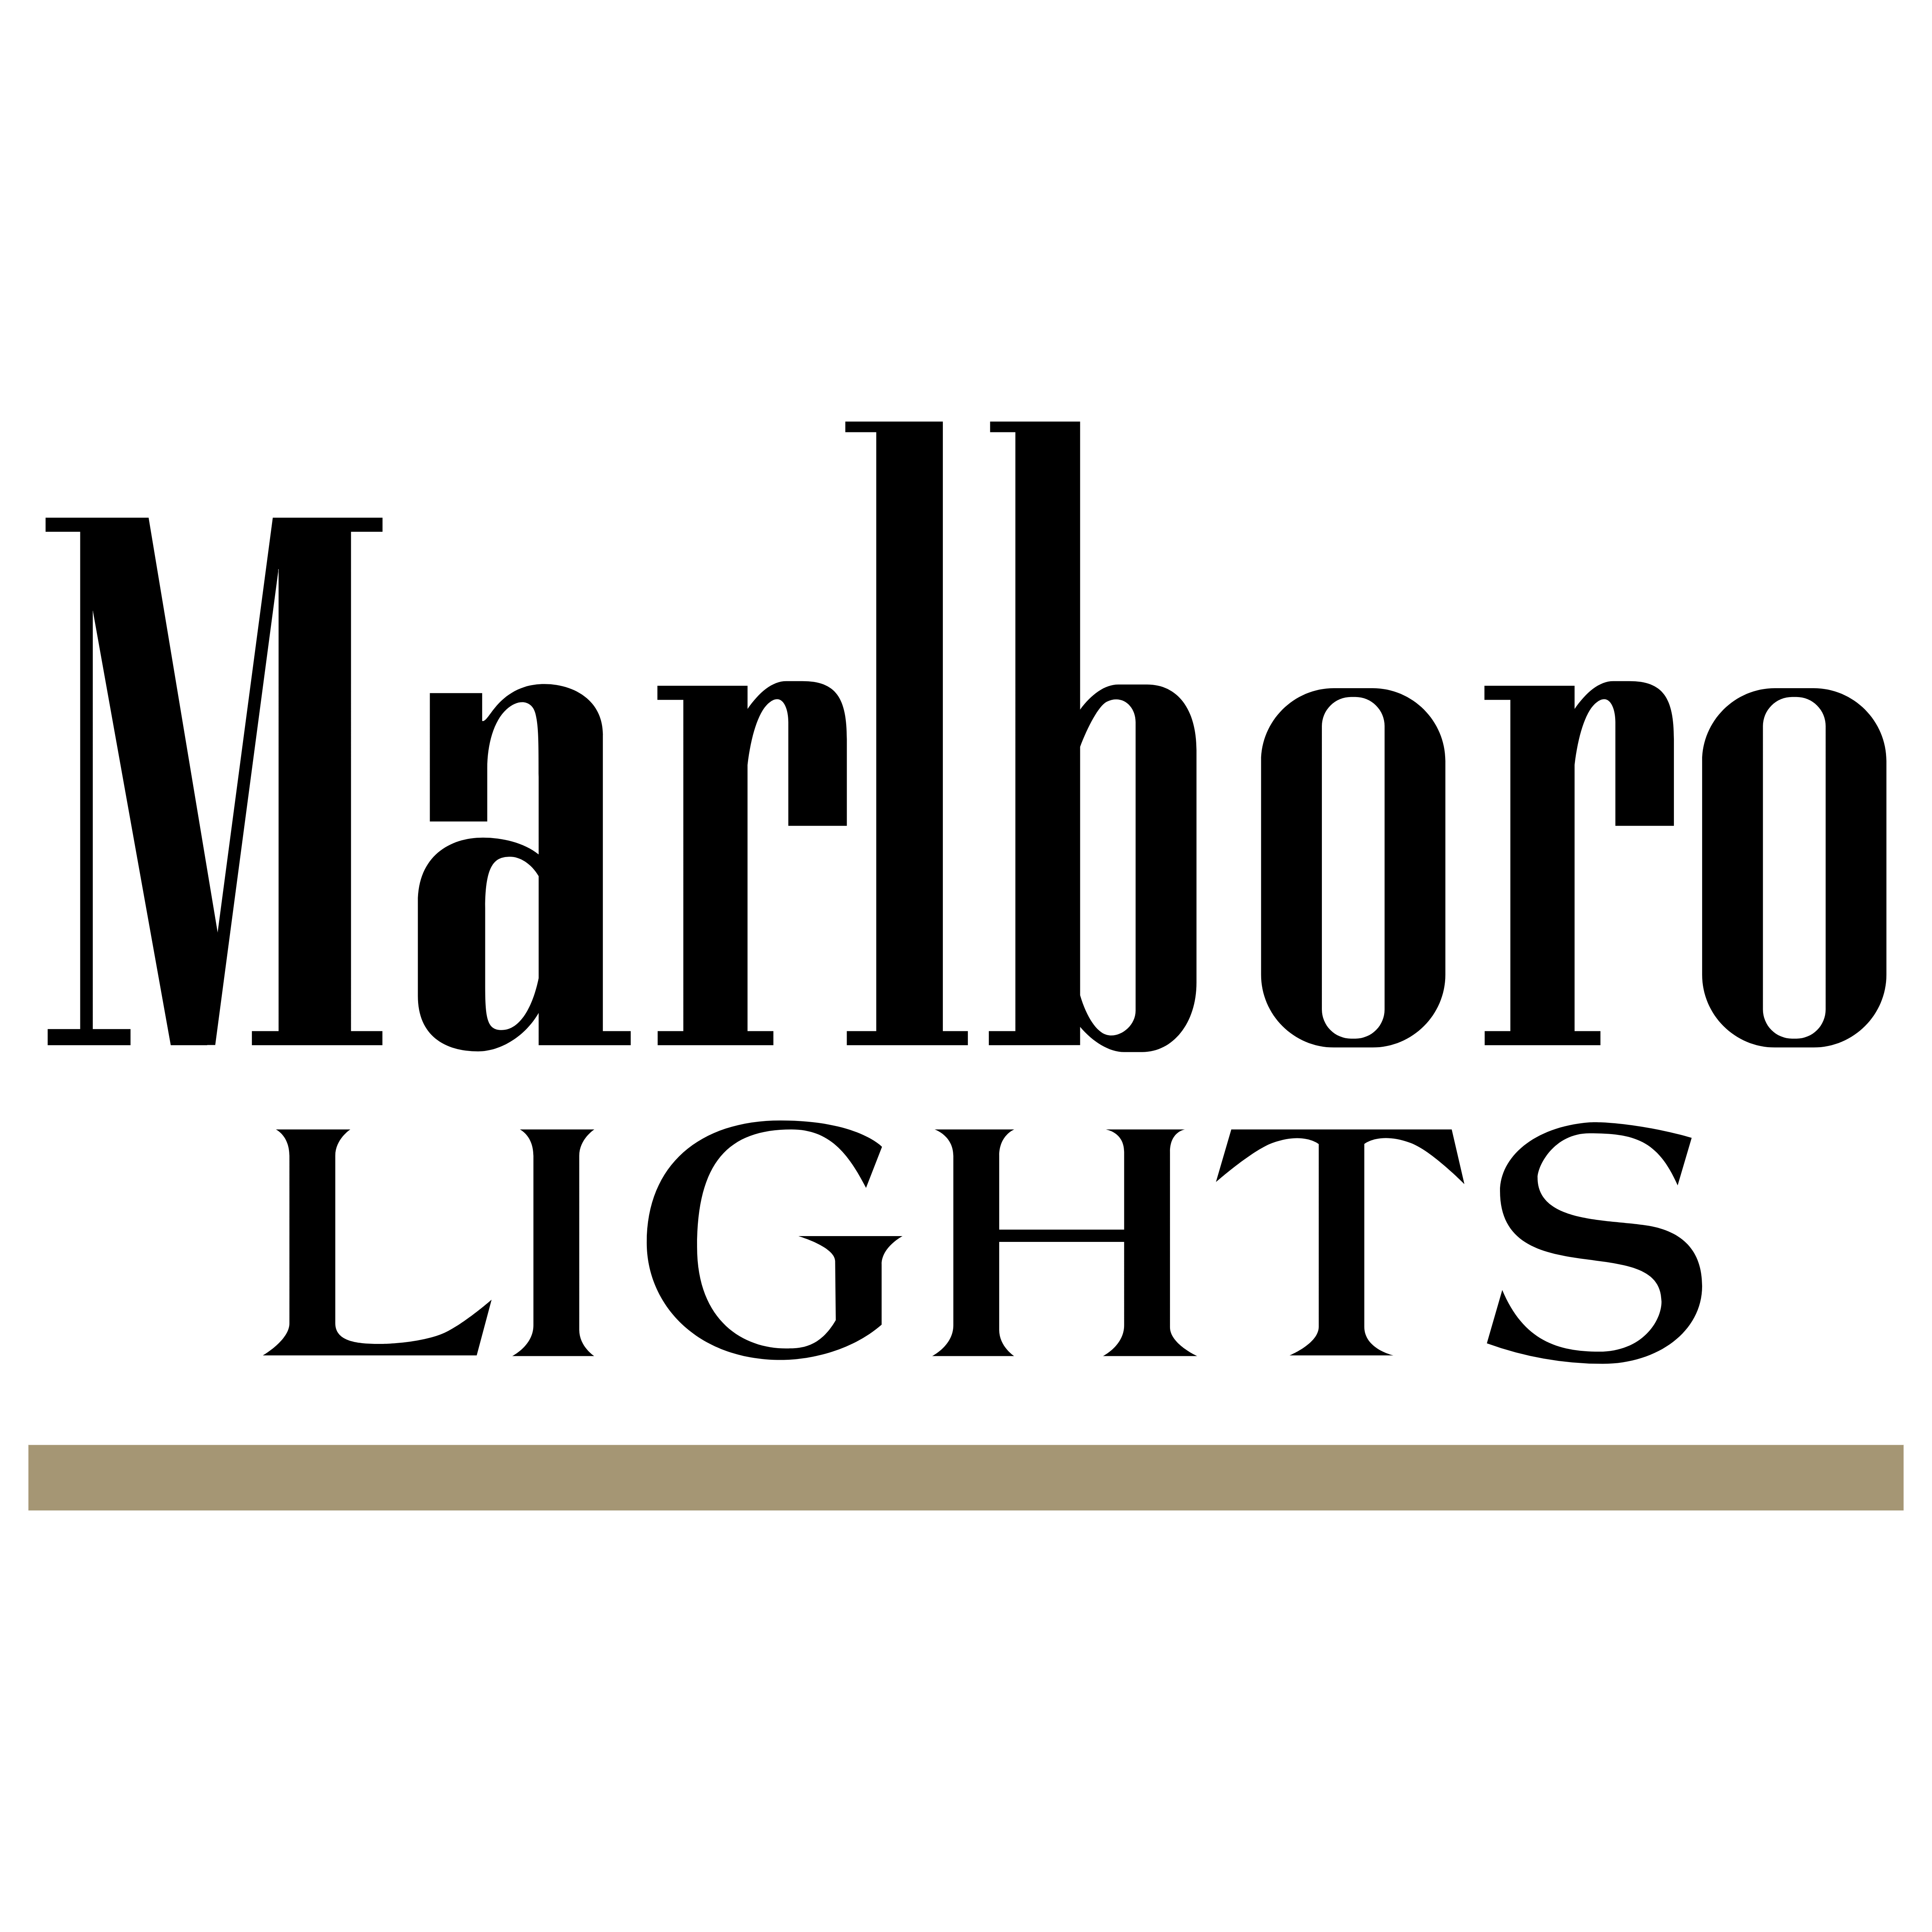 marlboro dating site Oak creek upper marlboro md - join the leader in online dating services and find a date today chat, voice recordings, matches and more join & find your love.